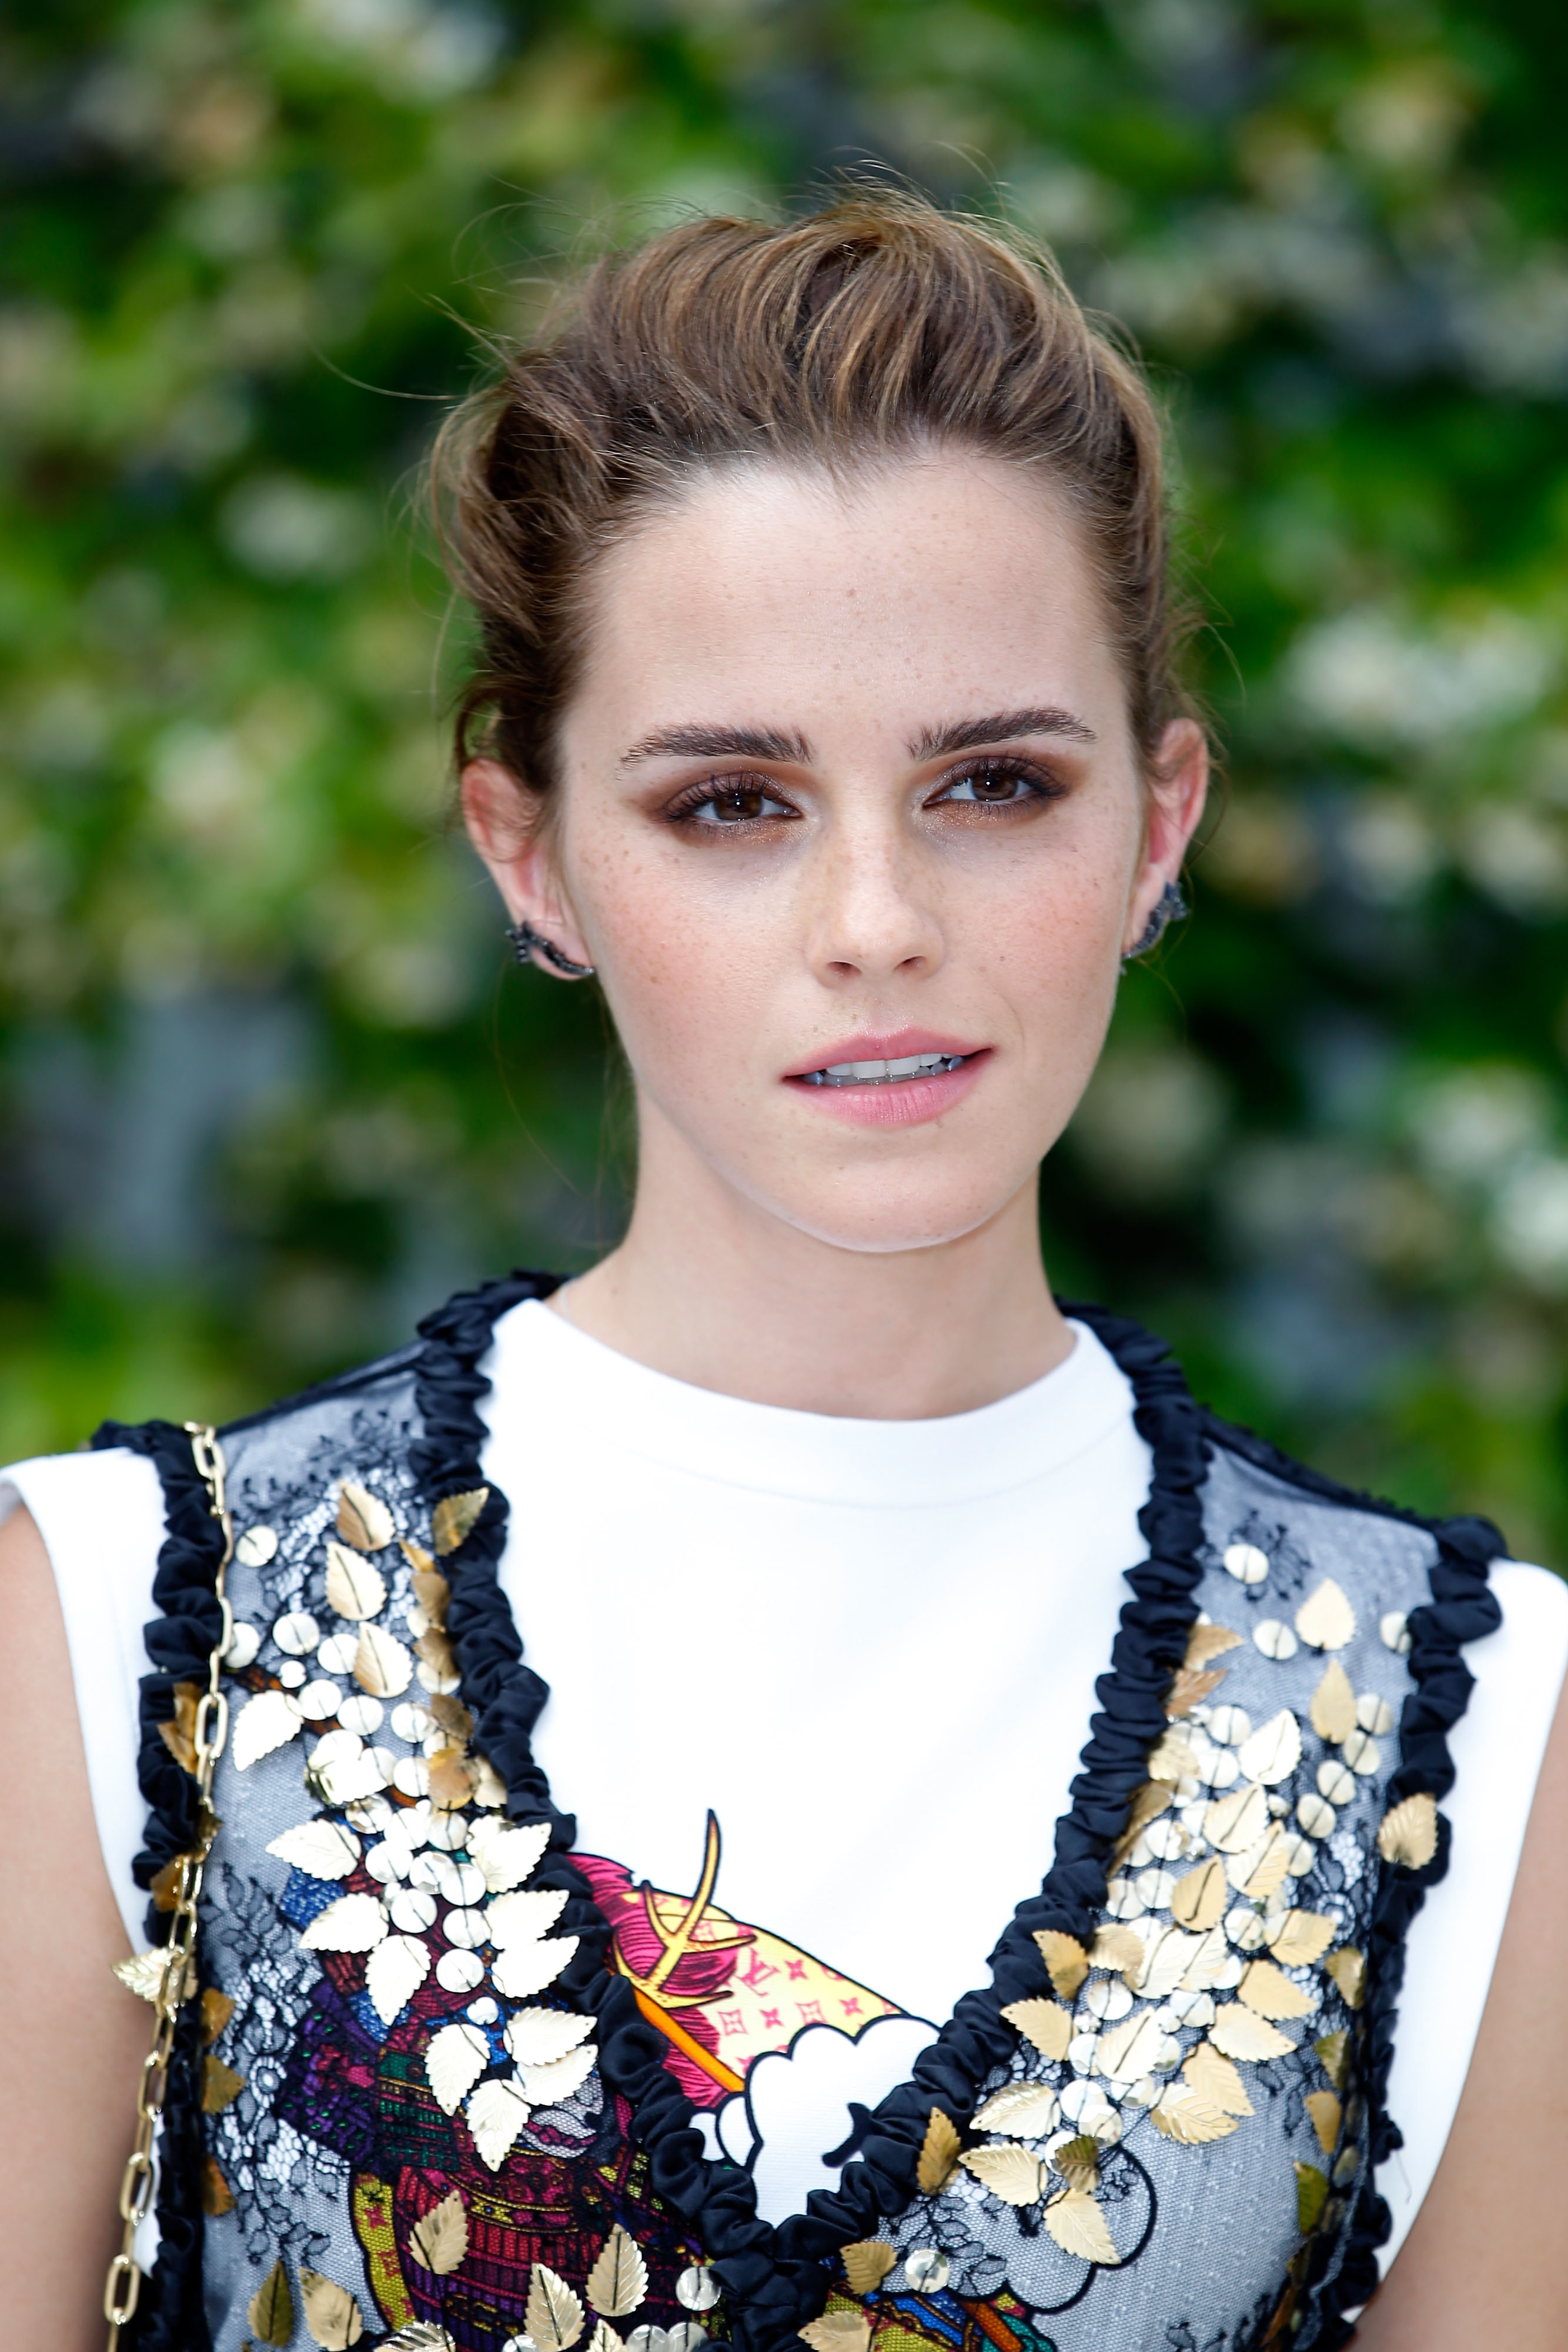 AB Emma Watson Getty Images